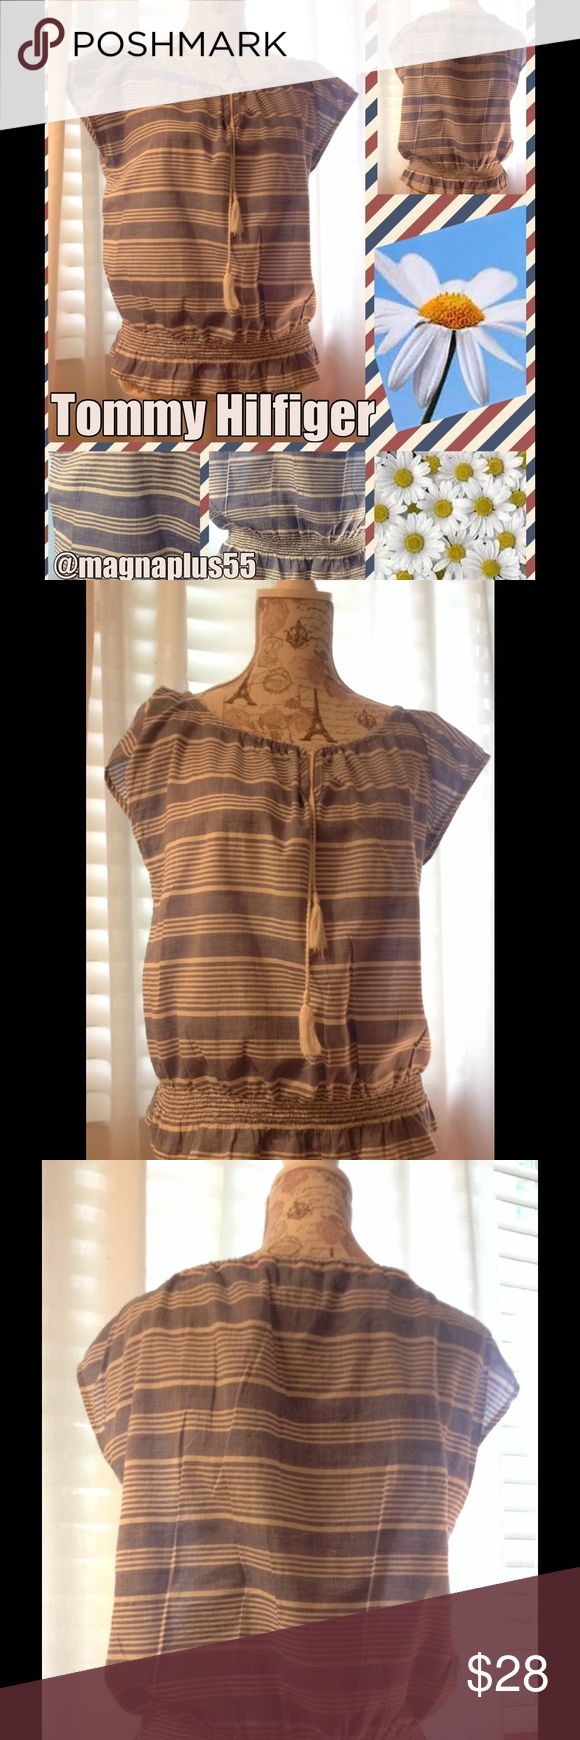 """TOMMY HILFIGER Short Sleeve Nautical Top M Blue Perfect for the beach and your summer parties! Measures approx 46"""" bust, 23"""" overall length, fabric is 100 cotton. EUC! Tommy Hilfiger Tops Blouses"""